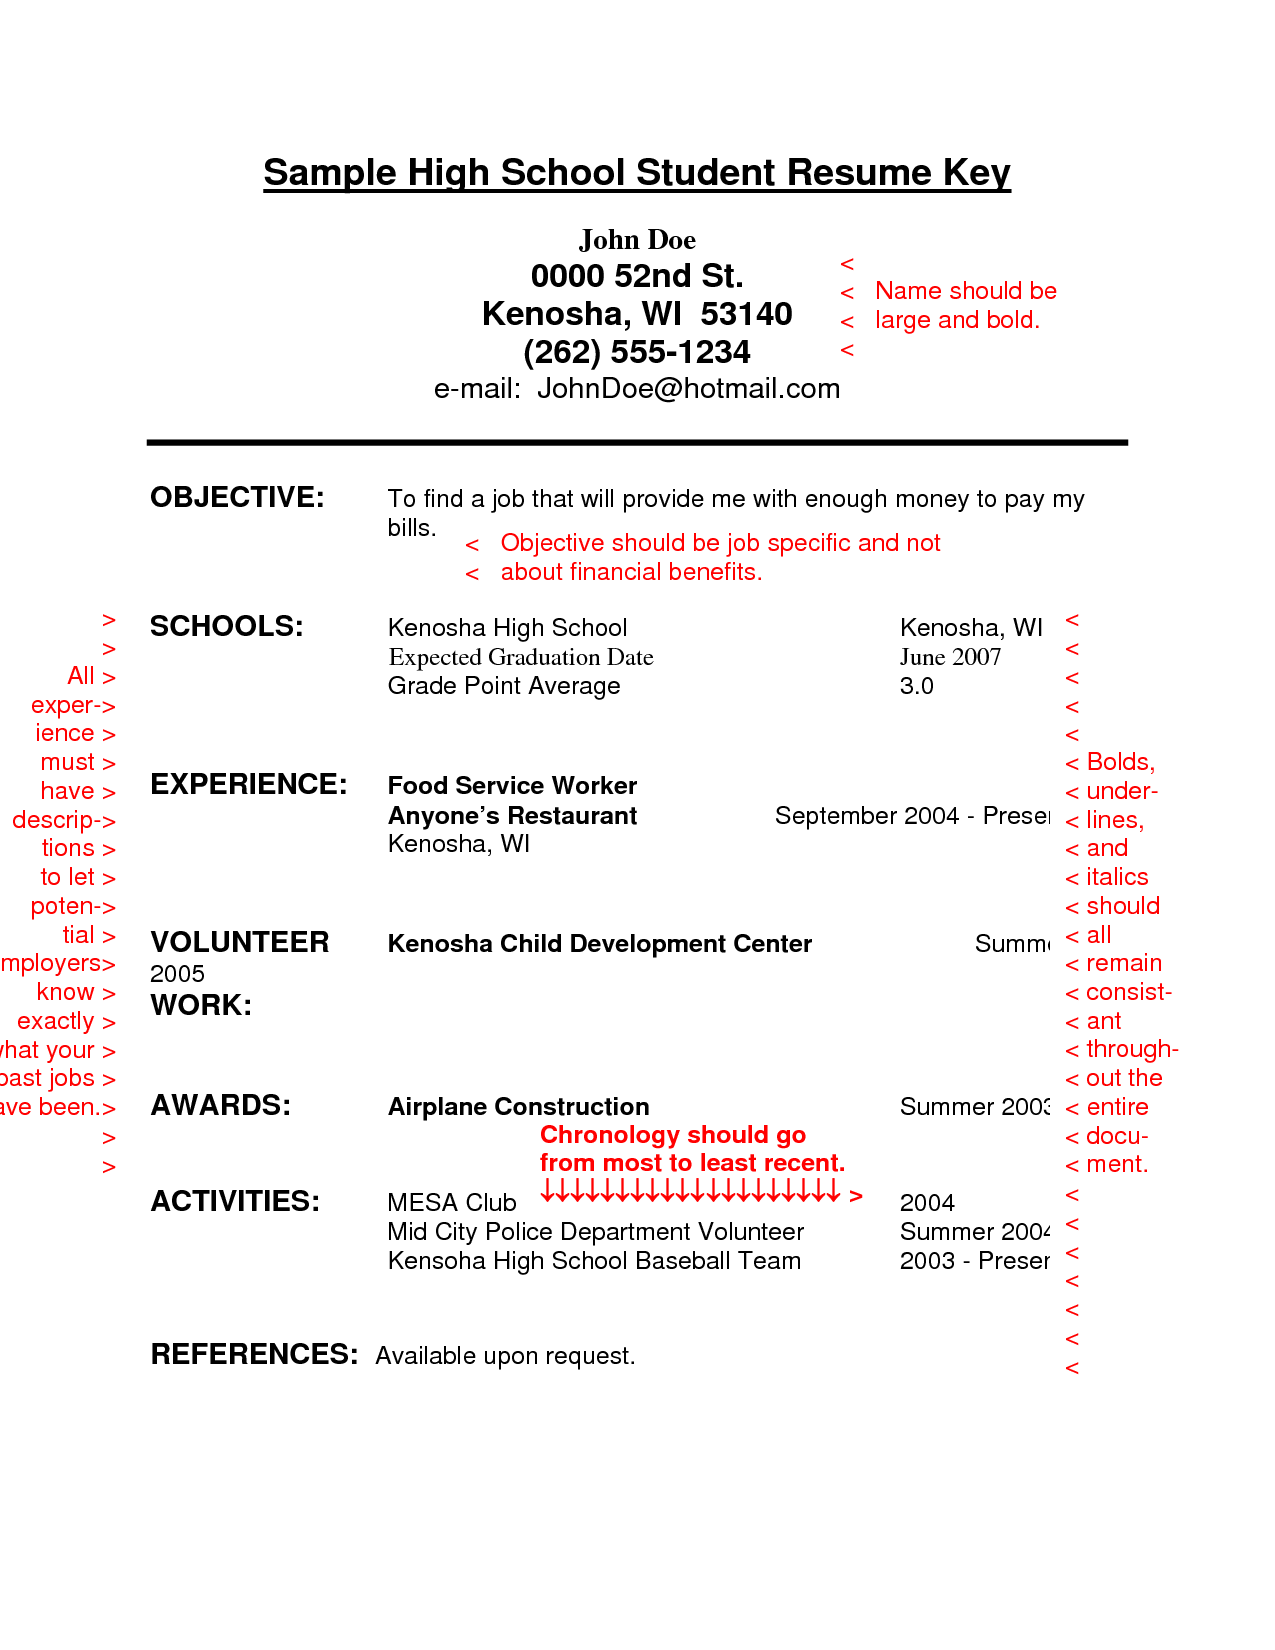 Job resume examples high school student